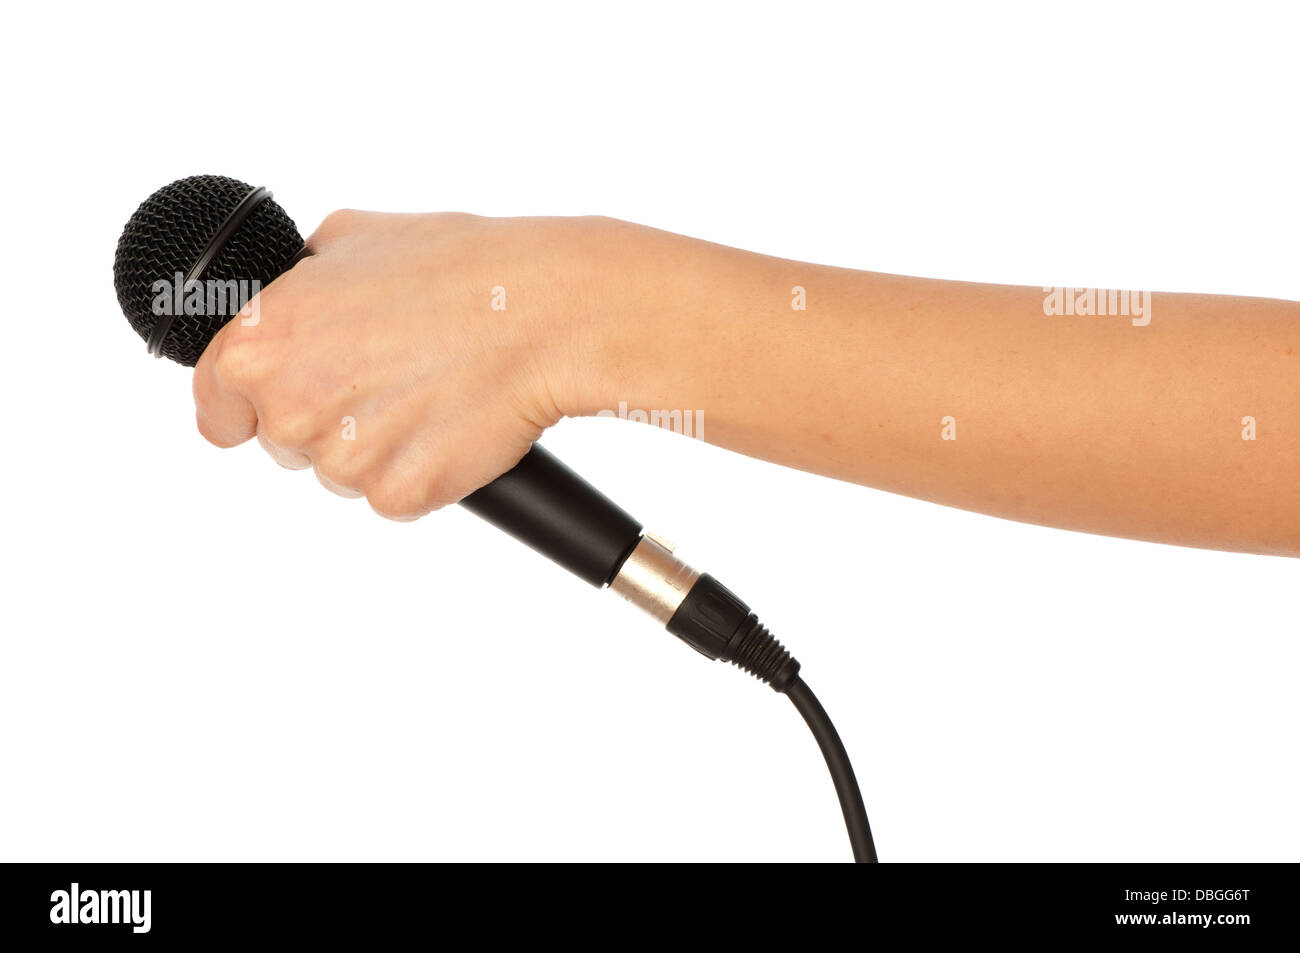 microphone for interview - Stock Image